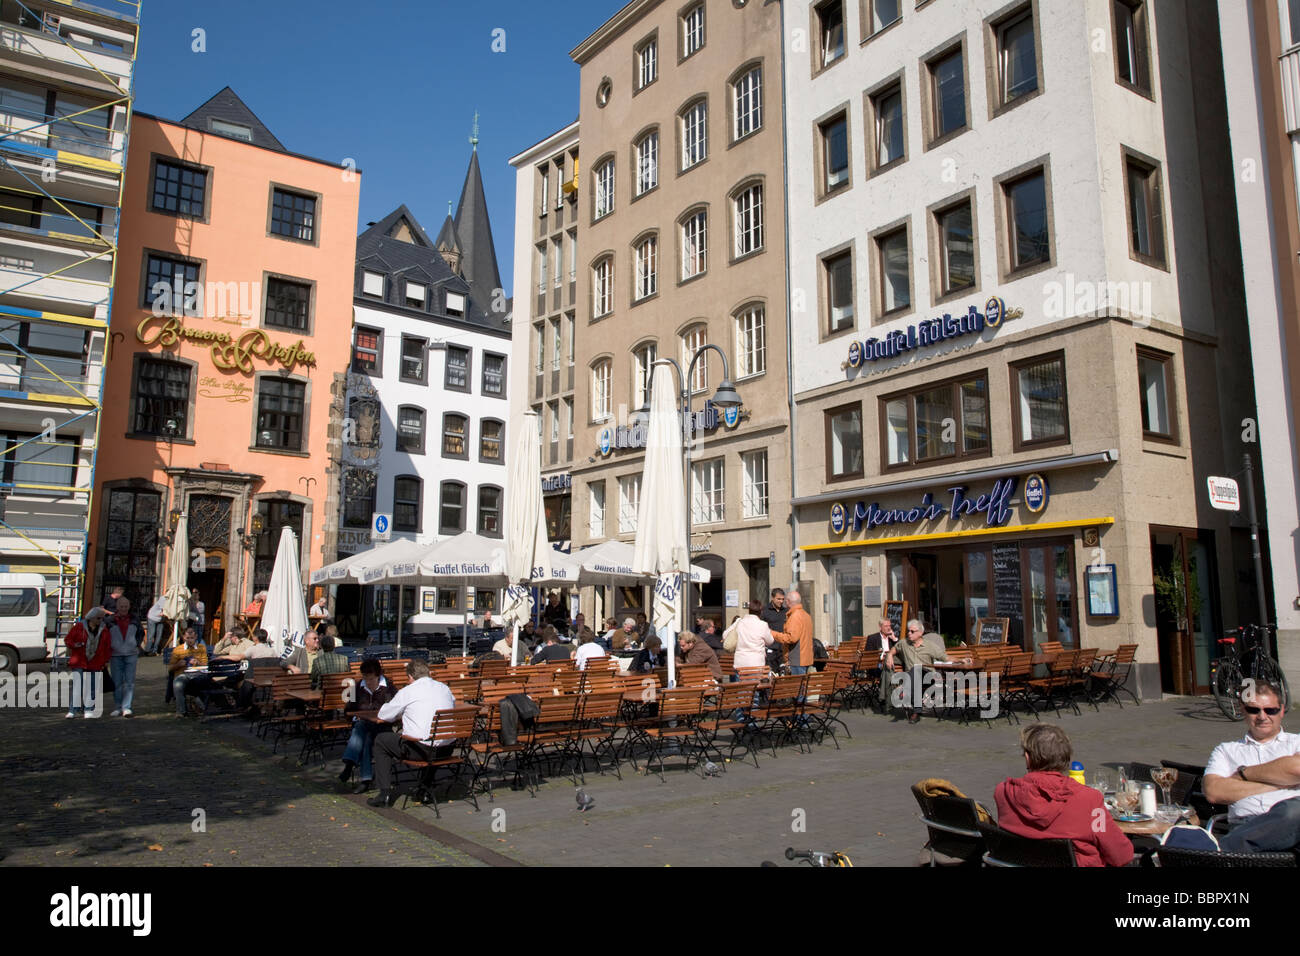 cafes and restaurant scene in cologne altstadt district